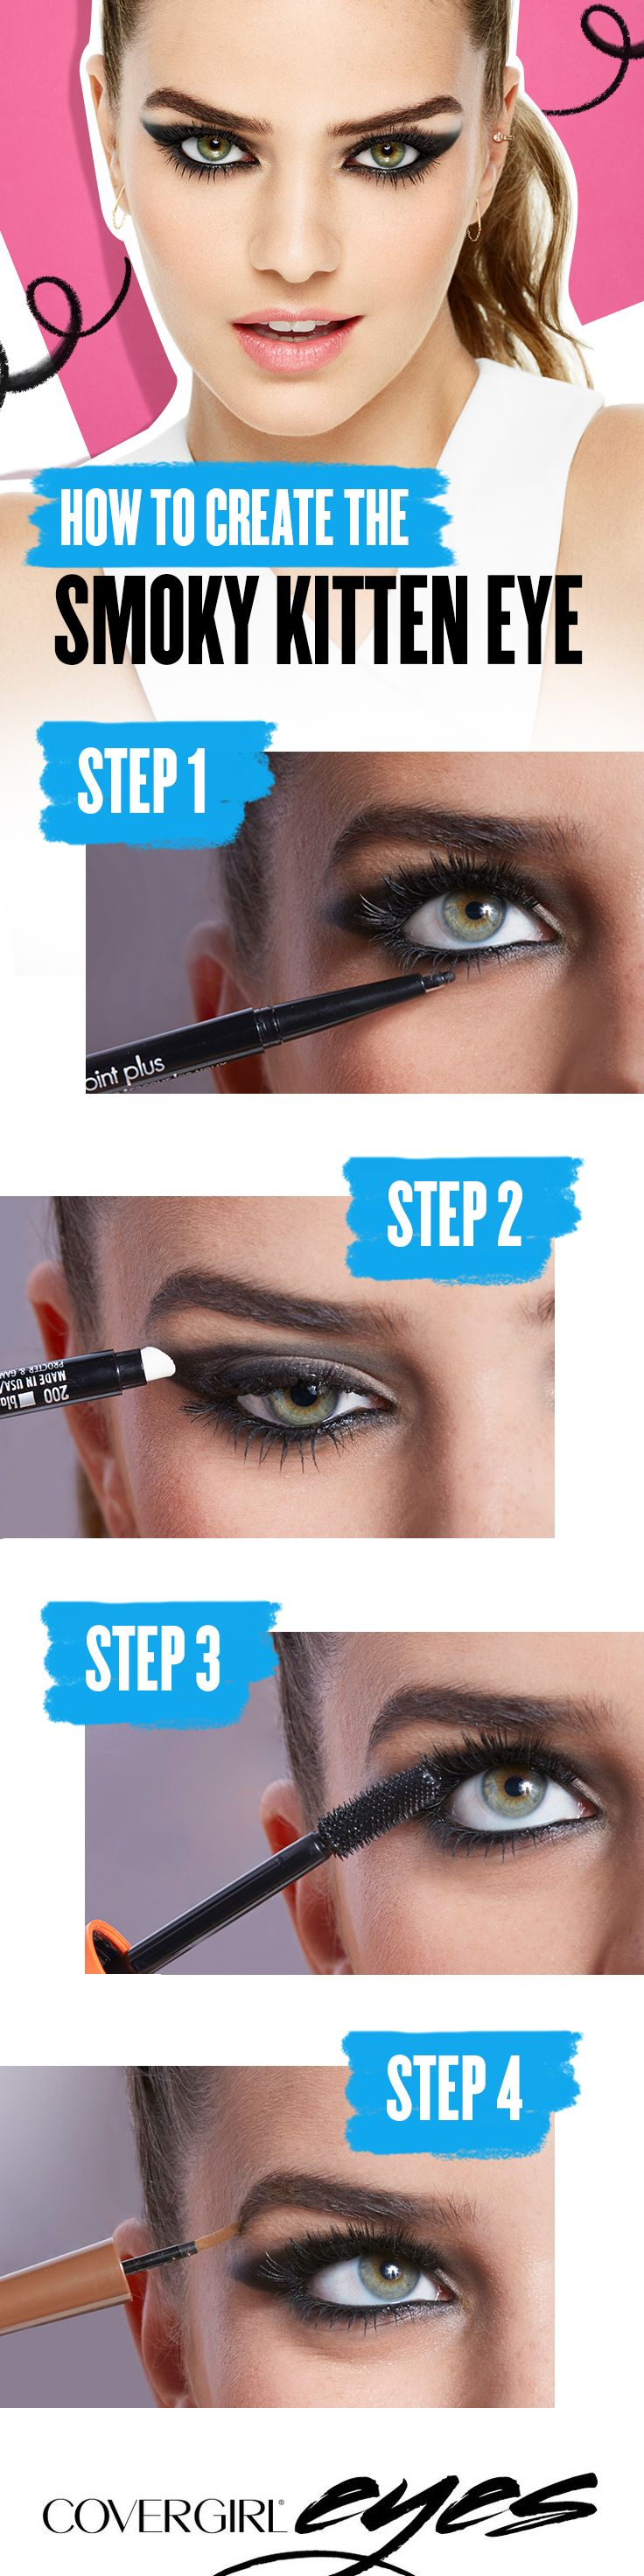 Try a cool, smokier alternative to the traditional cat eye — Create the perfect kitten eye using these 4 easy steps. Step 1: Start with COVERGIRL Perfect Point Plus Mascara. Step 2: Smudge with sponge tip to smoke it out. Step 3: Load up your lashes and create instant volume using COVERGIRL LashBlast Mascara. Step 4: Then, add a pow to your brow using COVERGIRL Pow-Der Brow. COVERGIRL is the simple way to Draw Attention to your eyes.